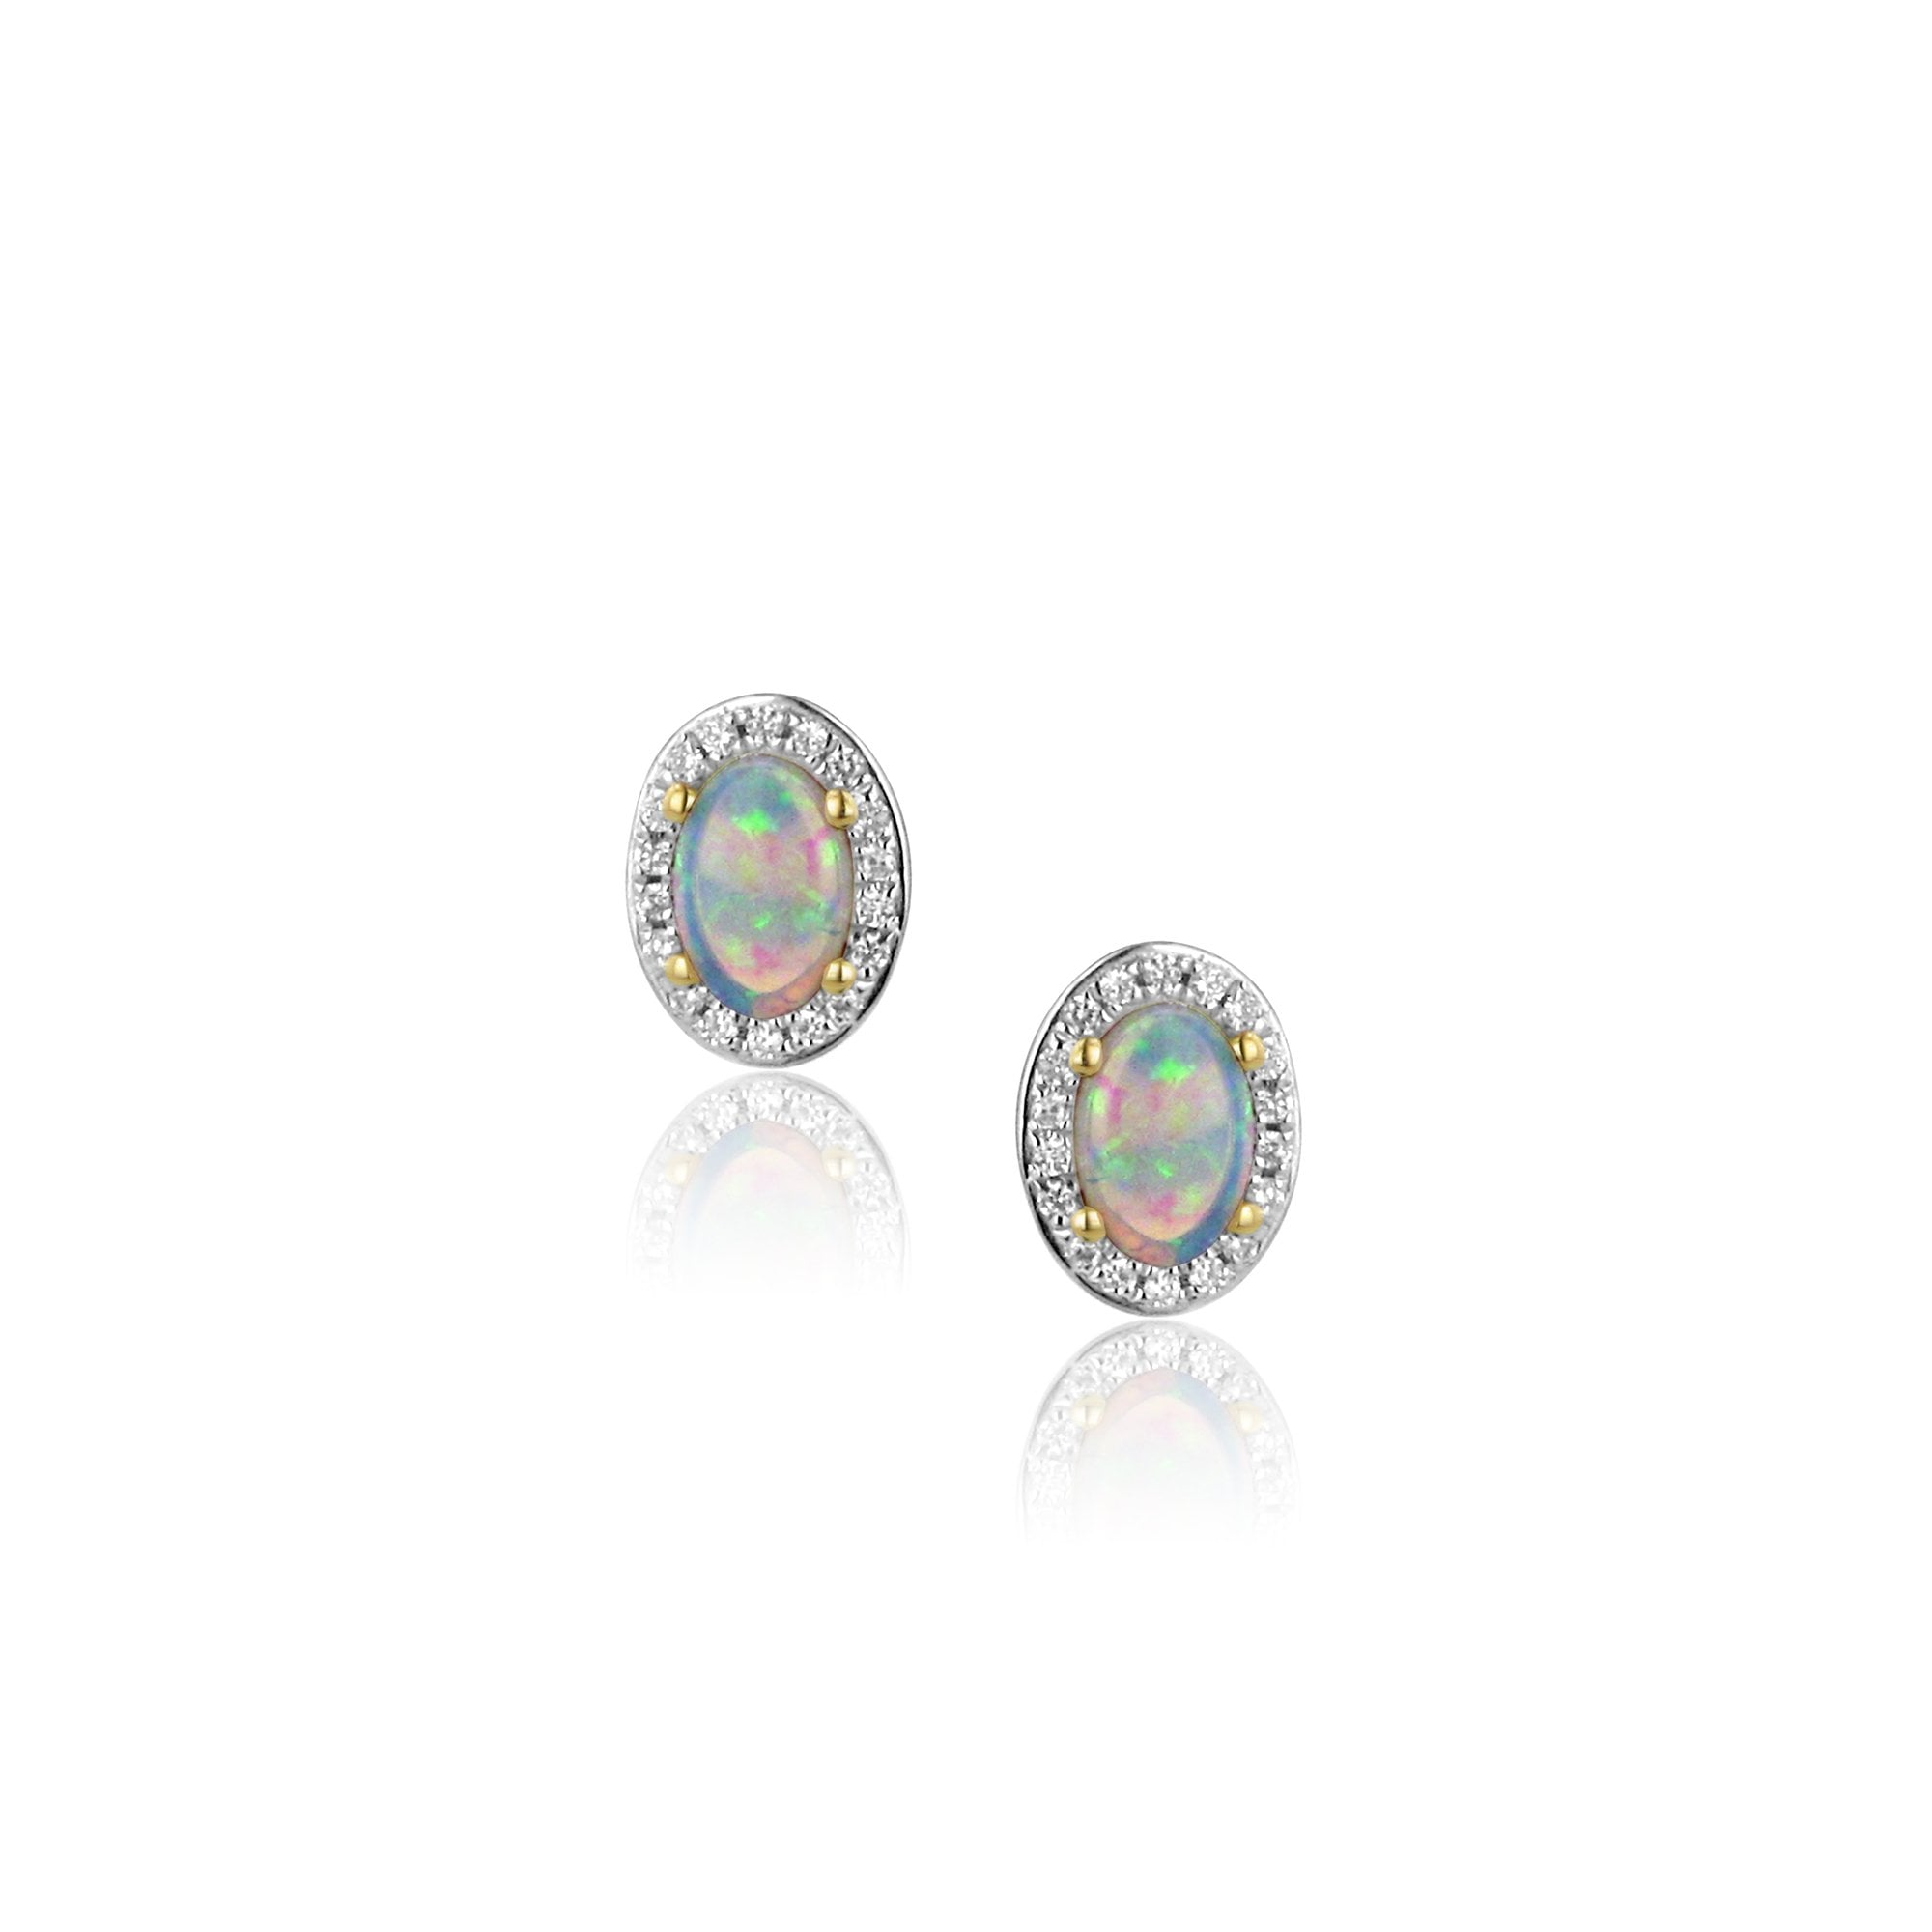 870ced951 18ct Gold Oval Opal and Diamond Cluster Stud Earrings - Womens from Avanti  of Ashbourne Ltd UK